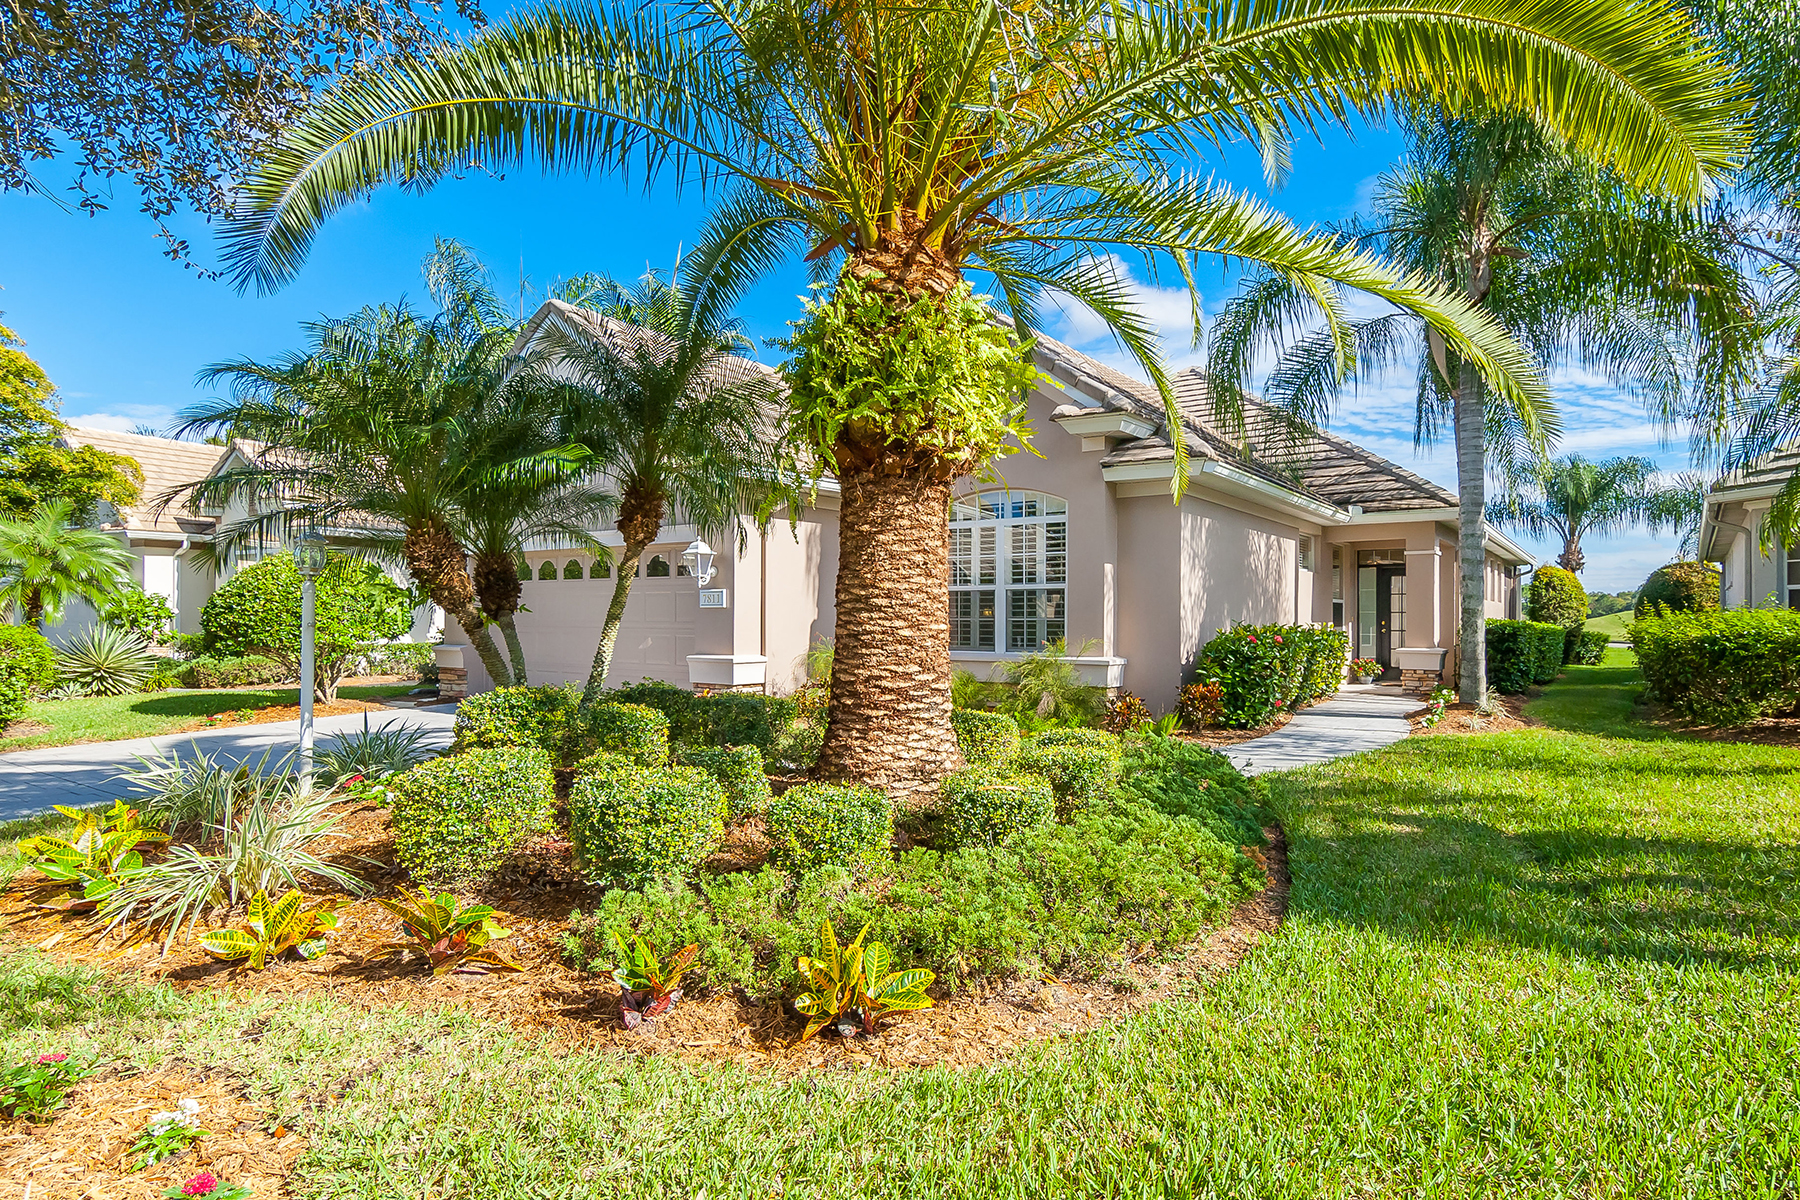 Single Family Home for Sale at LAKEWOOD RANCH COUNTRY CLUB 7811 Heritage Classic Ct Lakewood Ranch, Florida, 34202 United States